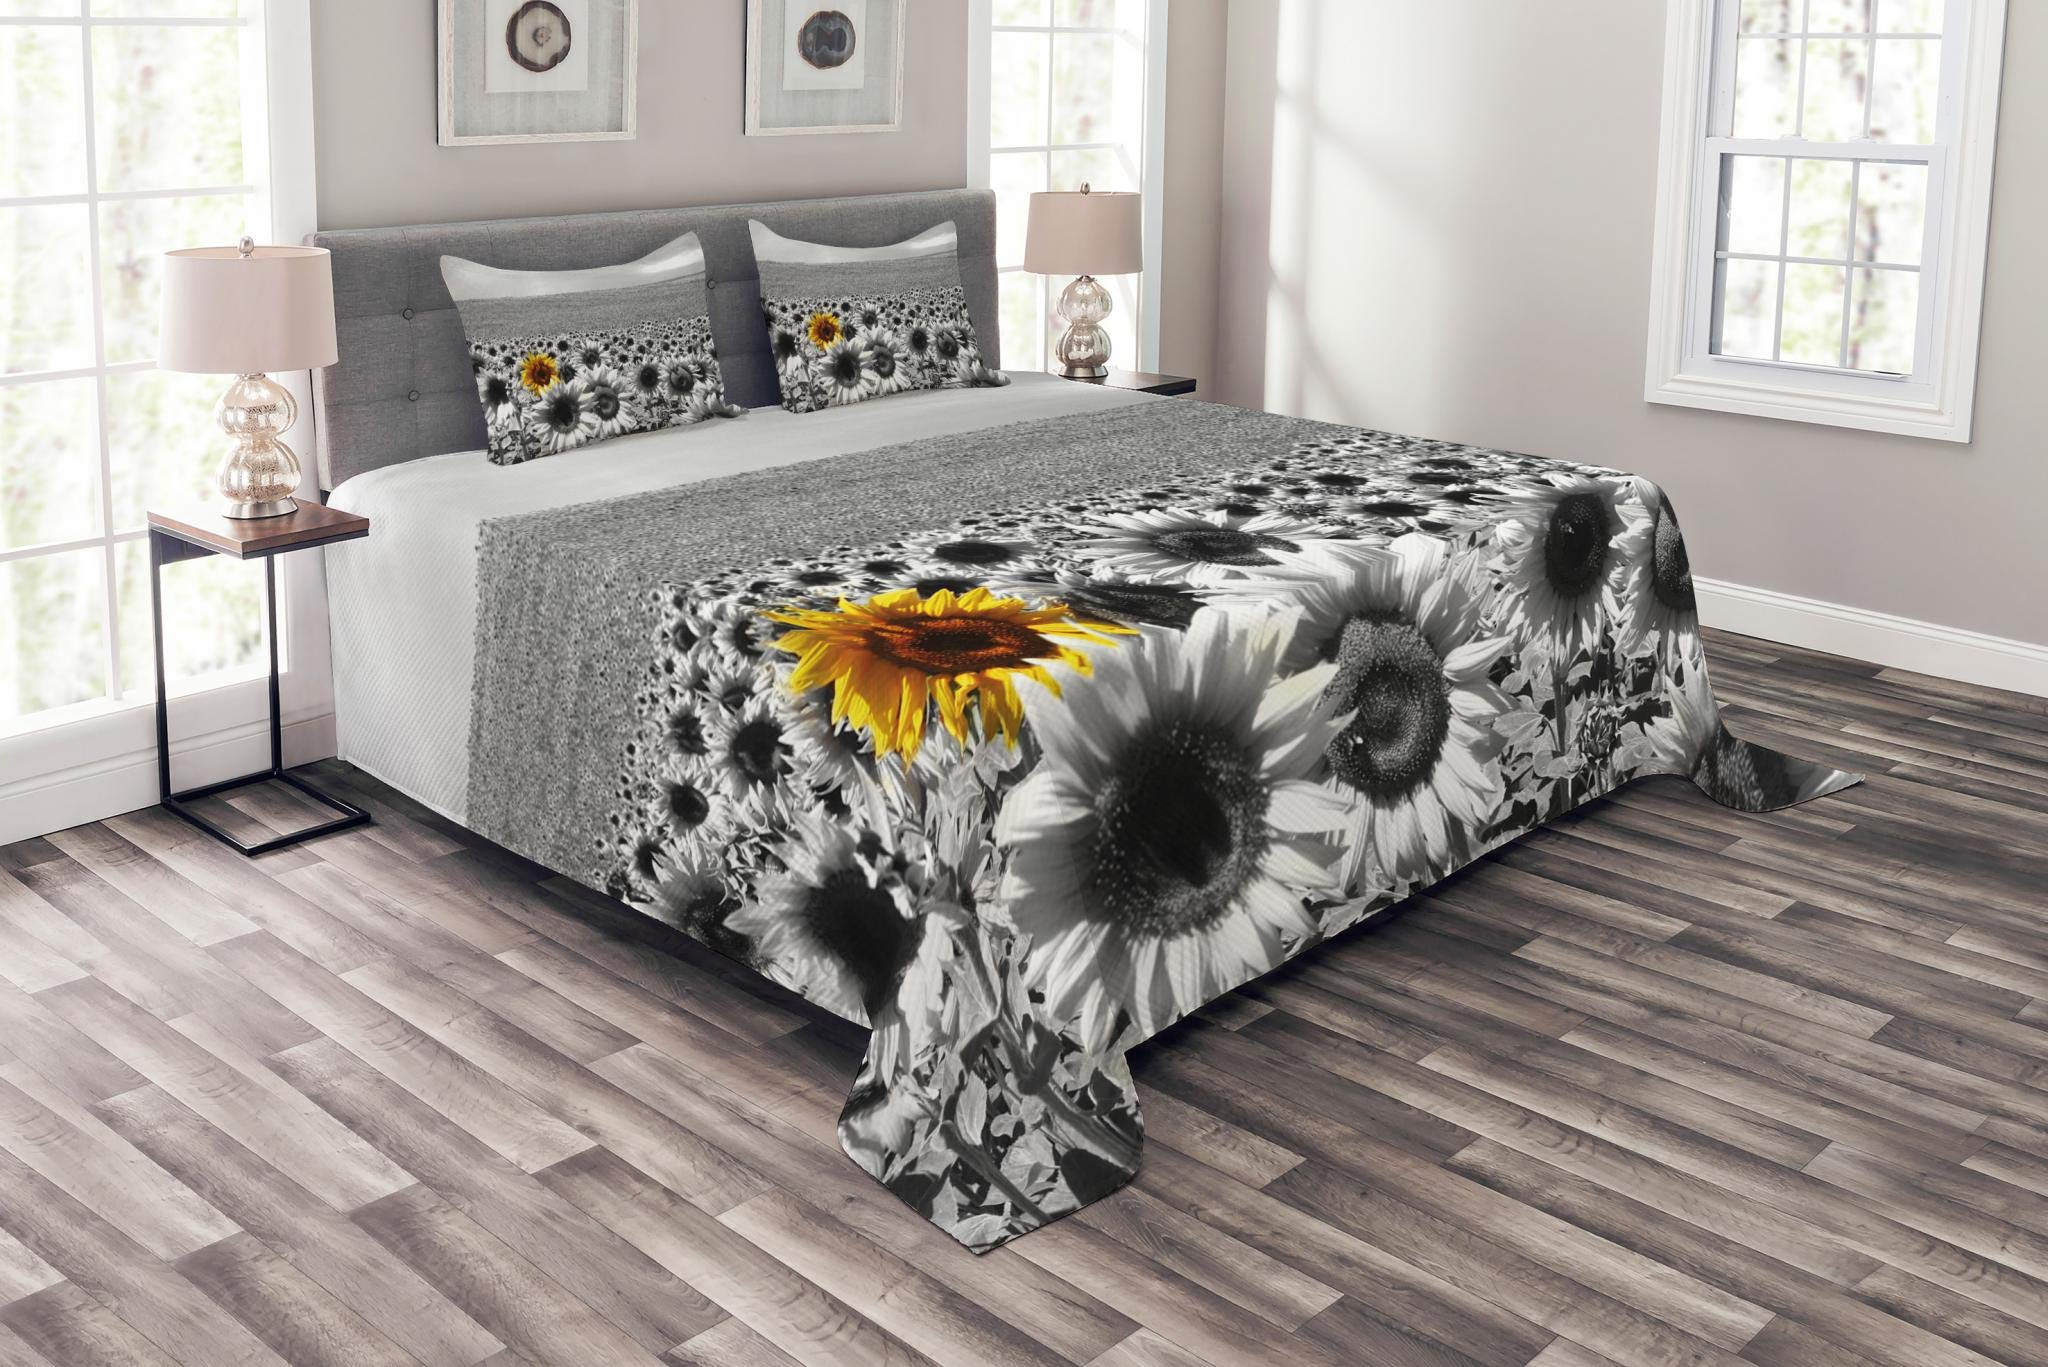 Lunarable Modern Coverlet Set Queen Size, Sunflower Field Black and White with a Single Yellow Flower Spring Landscape Individuality, Decorative Quilted 3 Piece Bedspread Set with 2 Pillow Shams, Grey by Lunarable